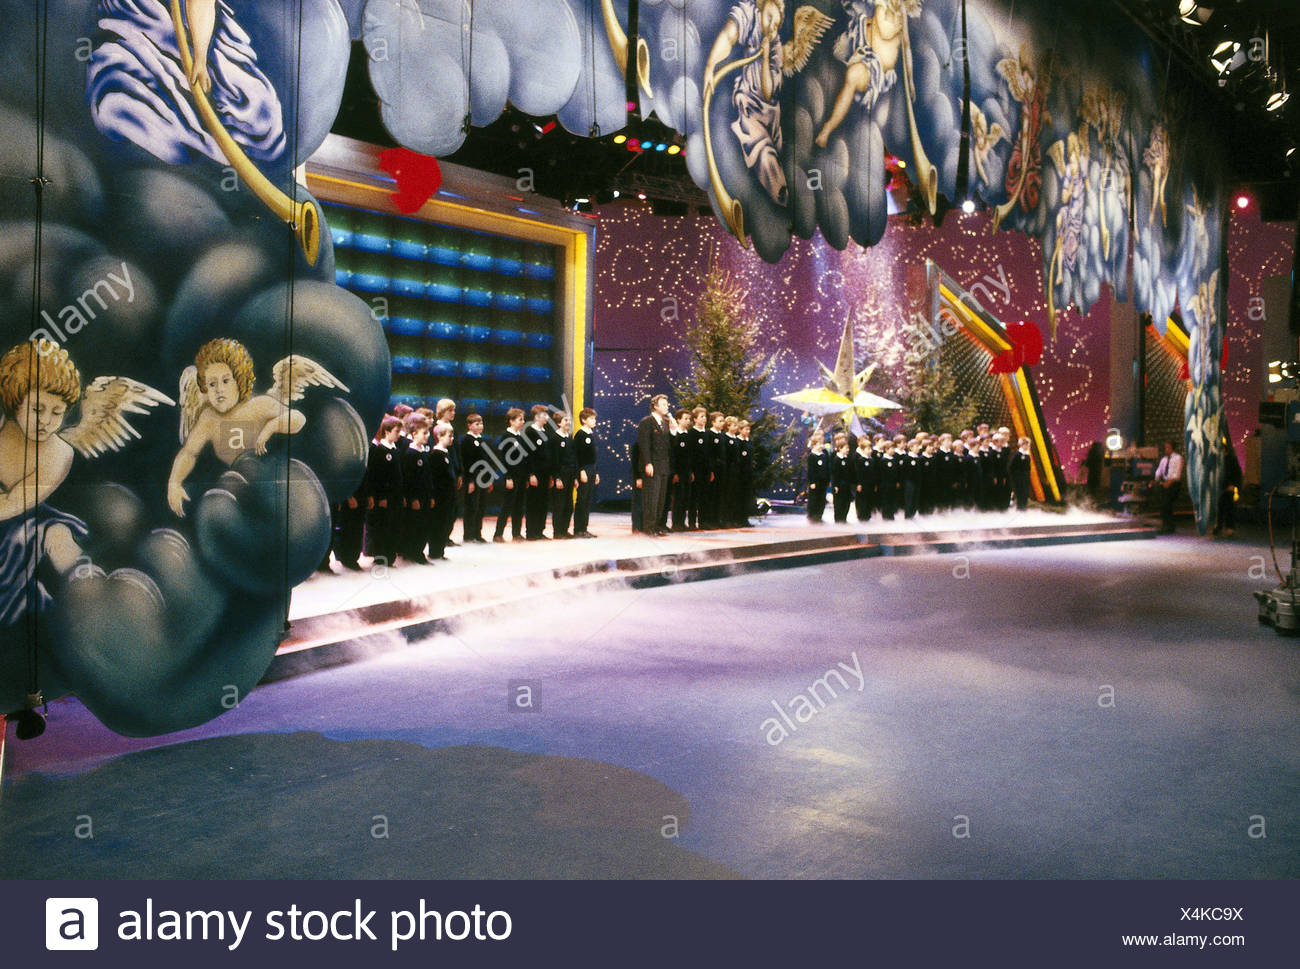 "TV show, ""Nase vorn"" (A Star is born), DEU 1988 - 1990, director: Klaudi Froehlich, scene with: Peter Alexander, choir, 1989, Third-Party-Permissions-Neccessary Stock Photo"